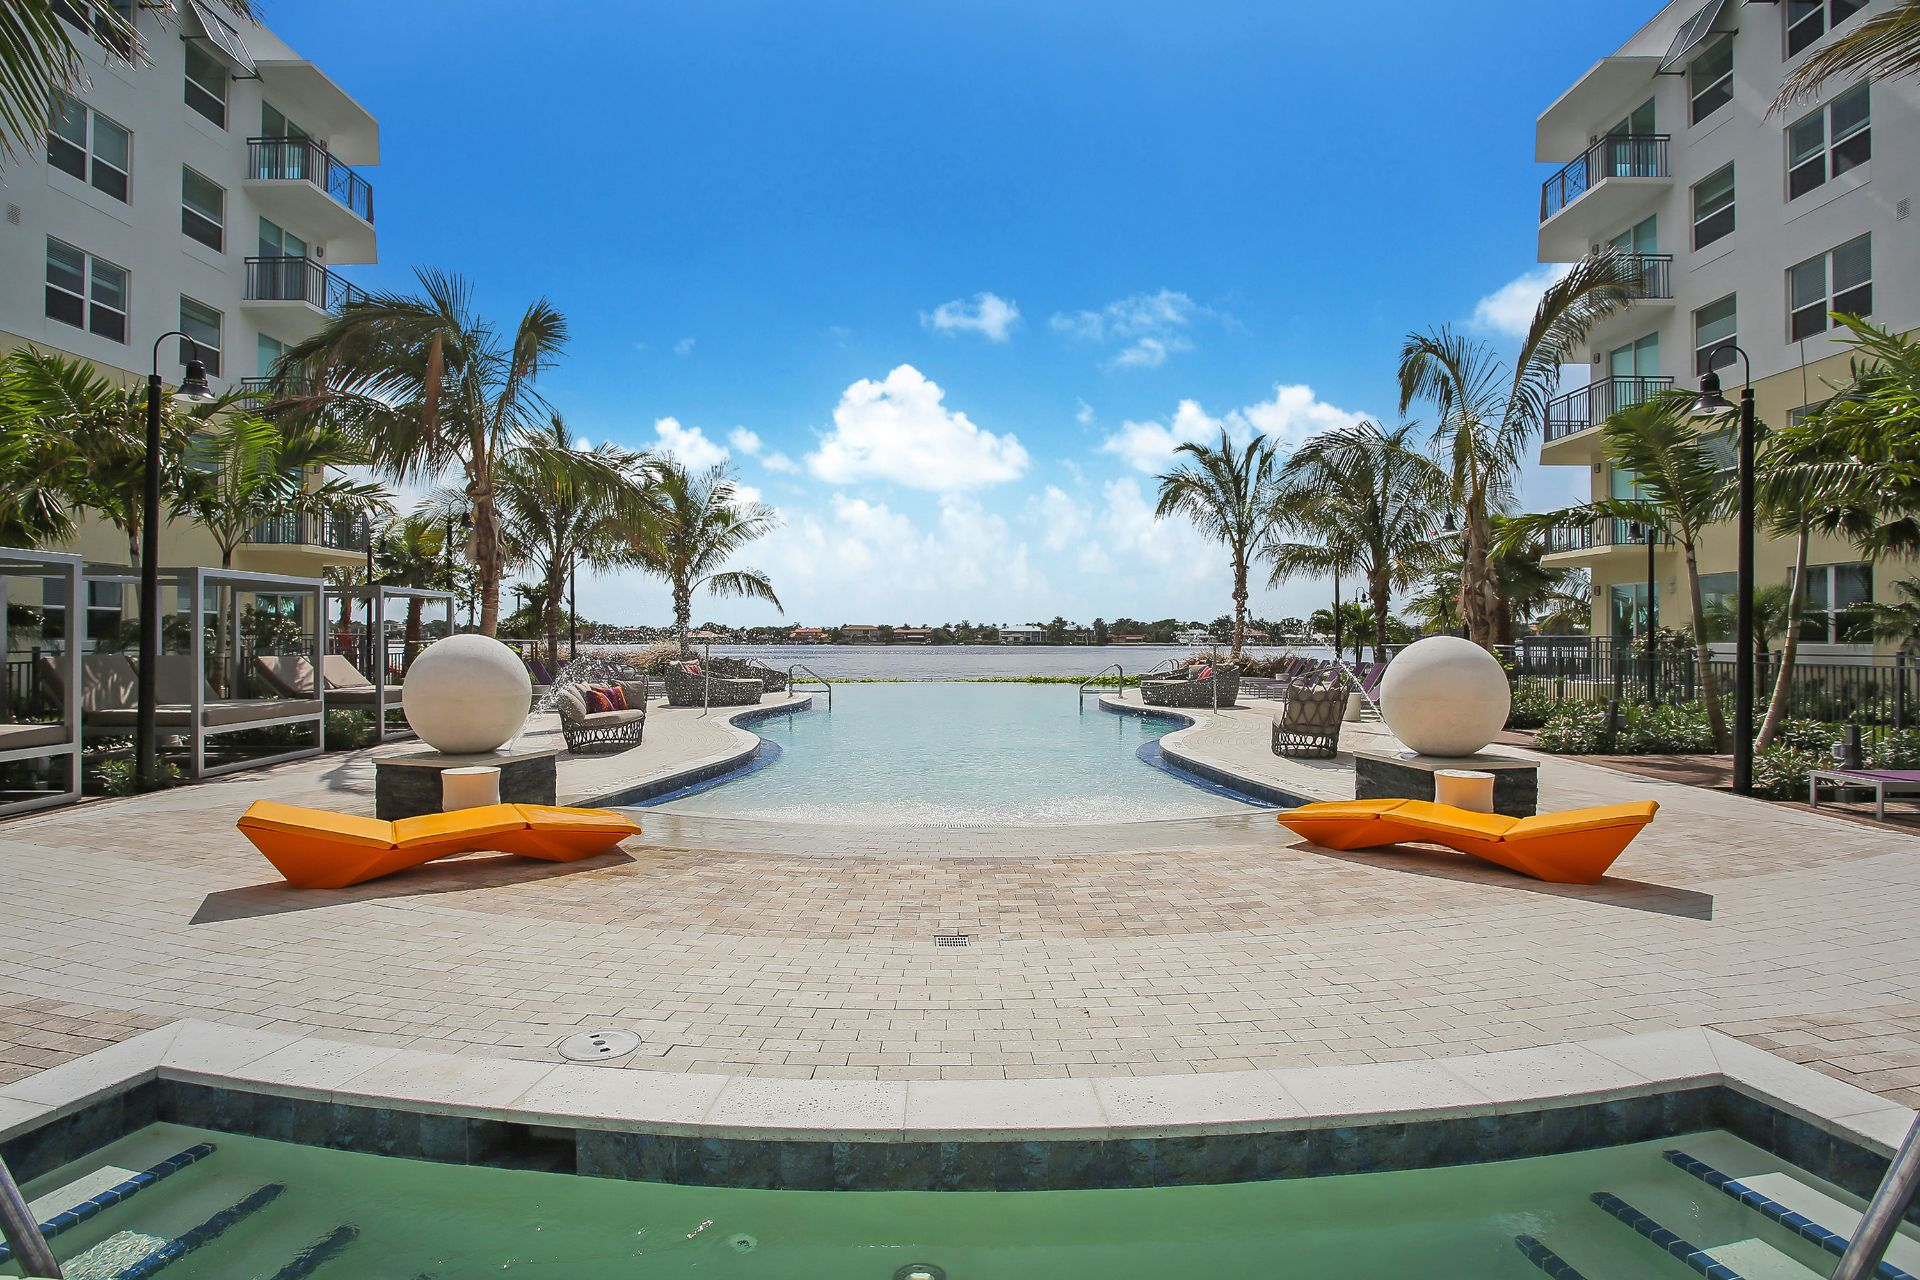 pool area and view of waterway